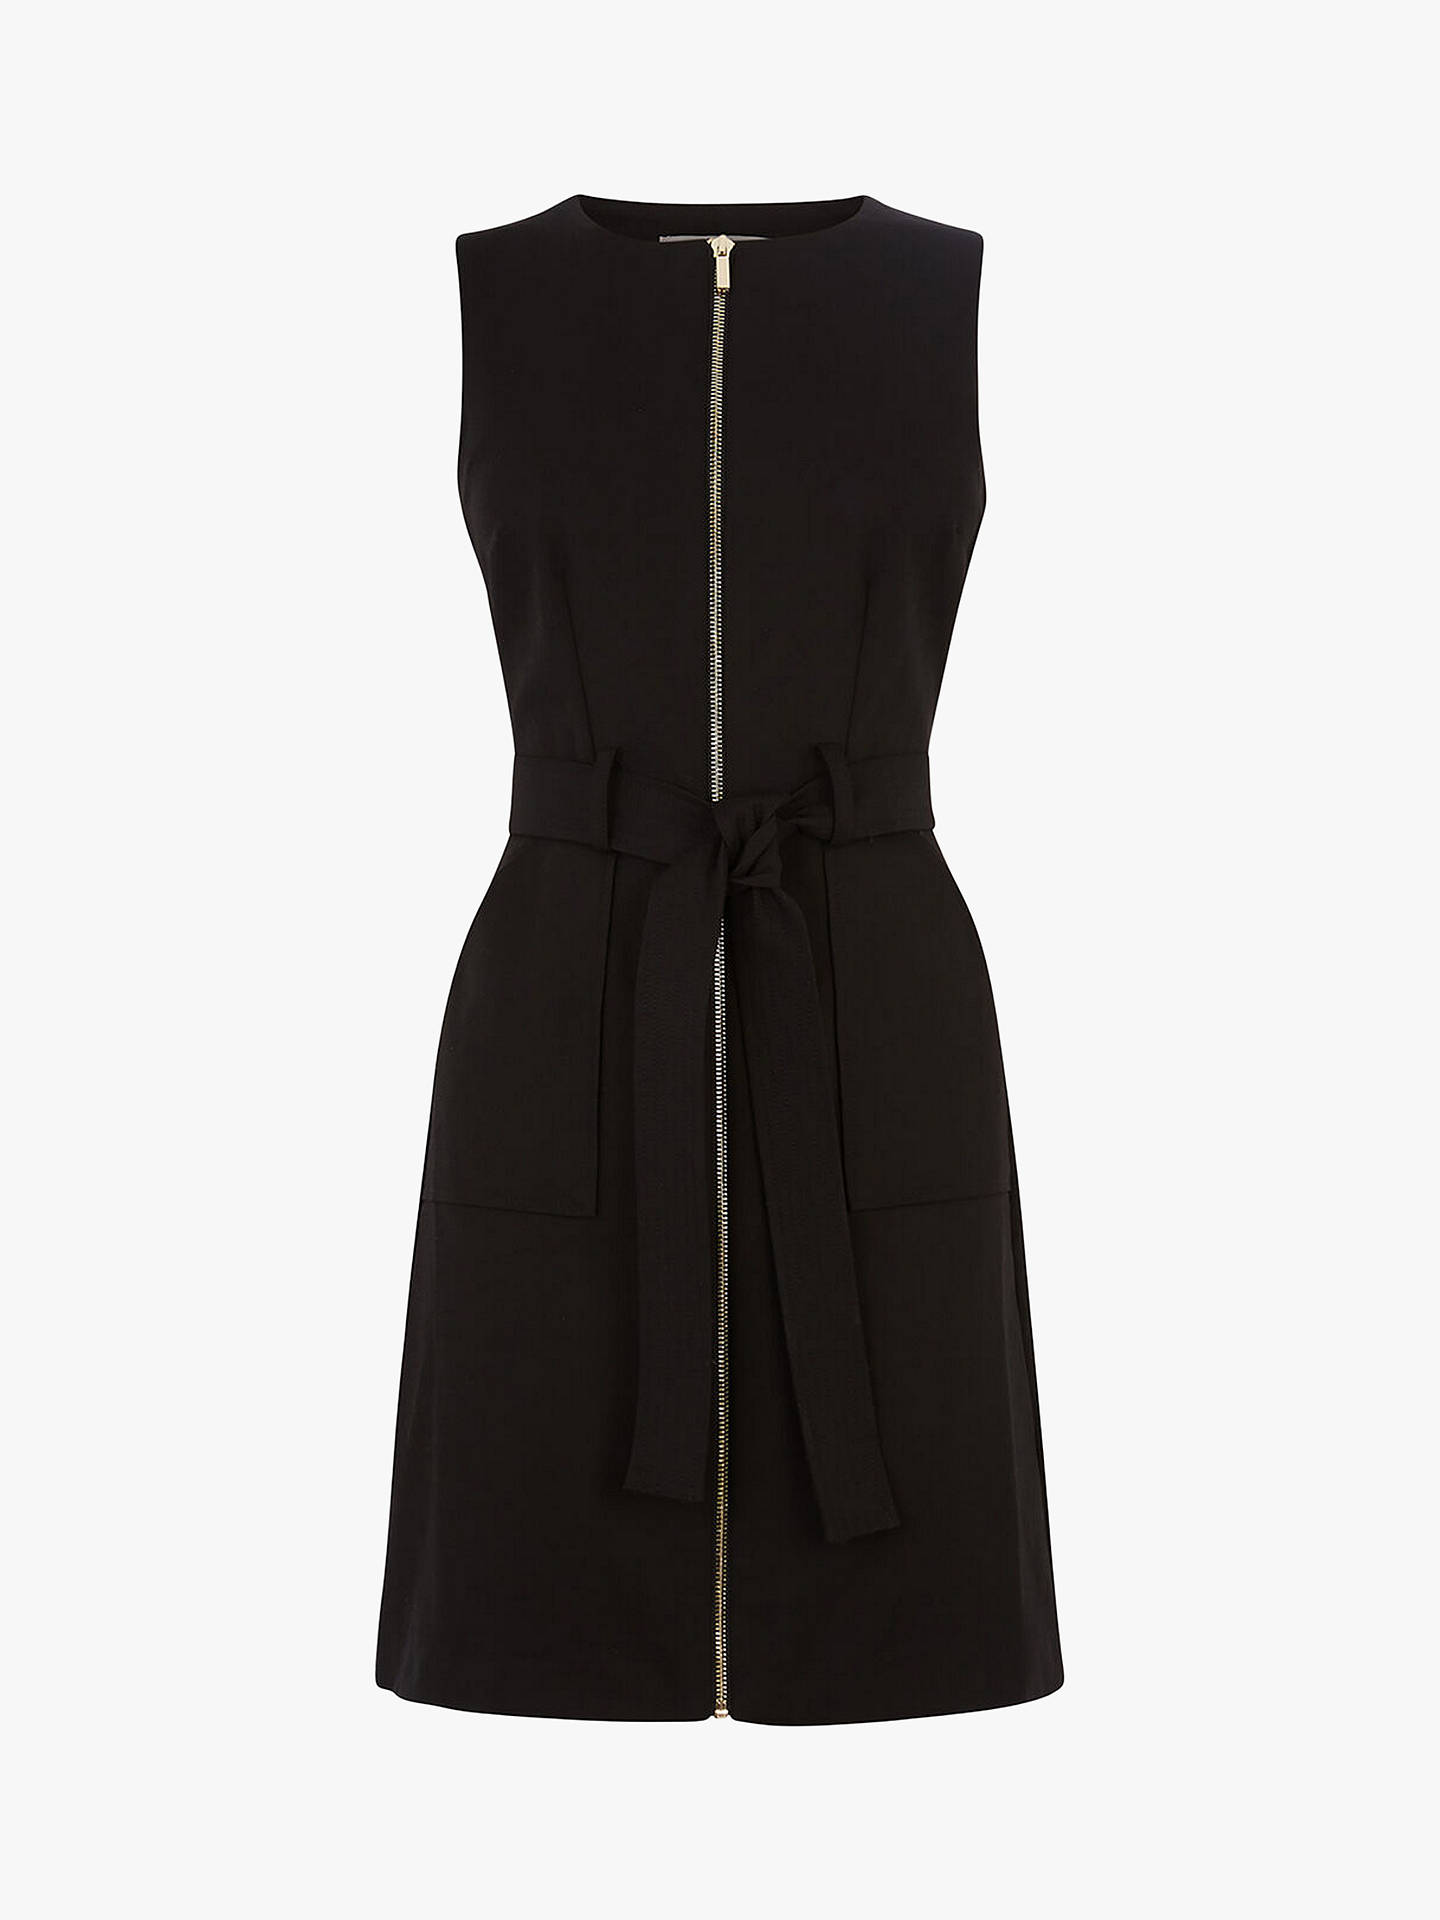 Buy Oasis Cotton Blend Utility Shift Dress, Black, 12L Online at johnlewis.com